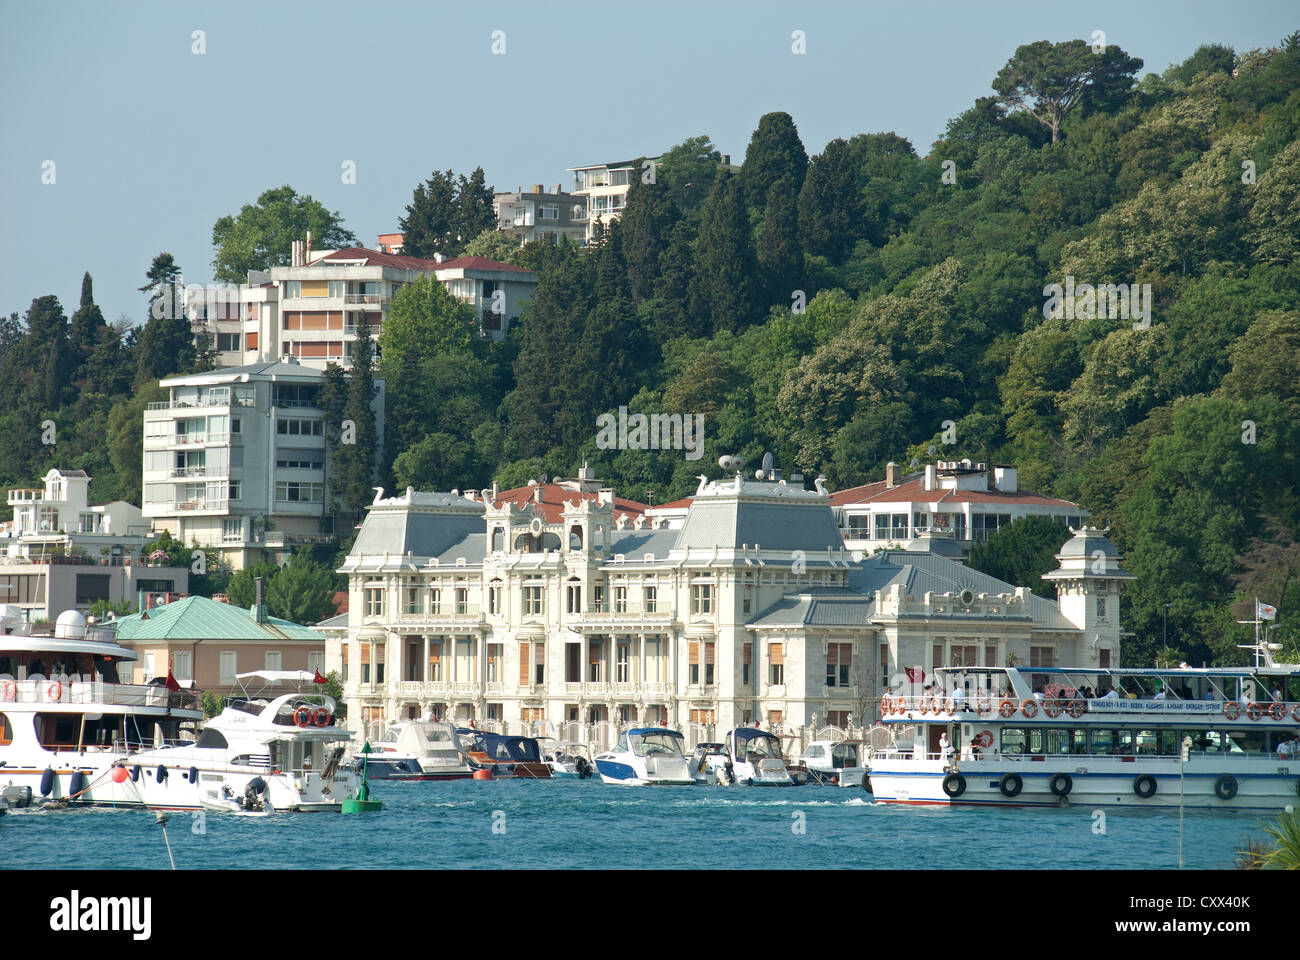 ISTANBUL, TURKEY. The Bosphorus suburb of Bebek, with the ...